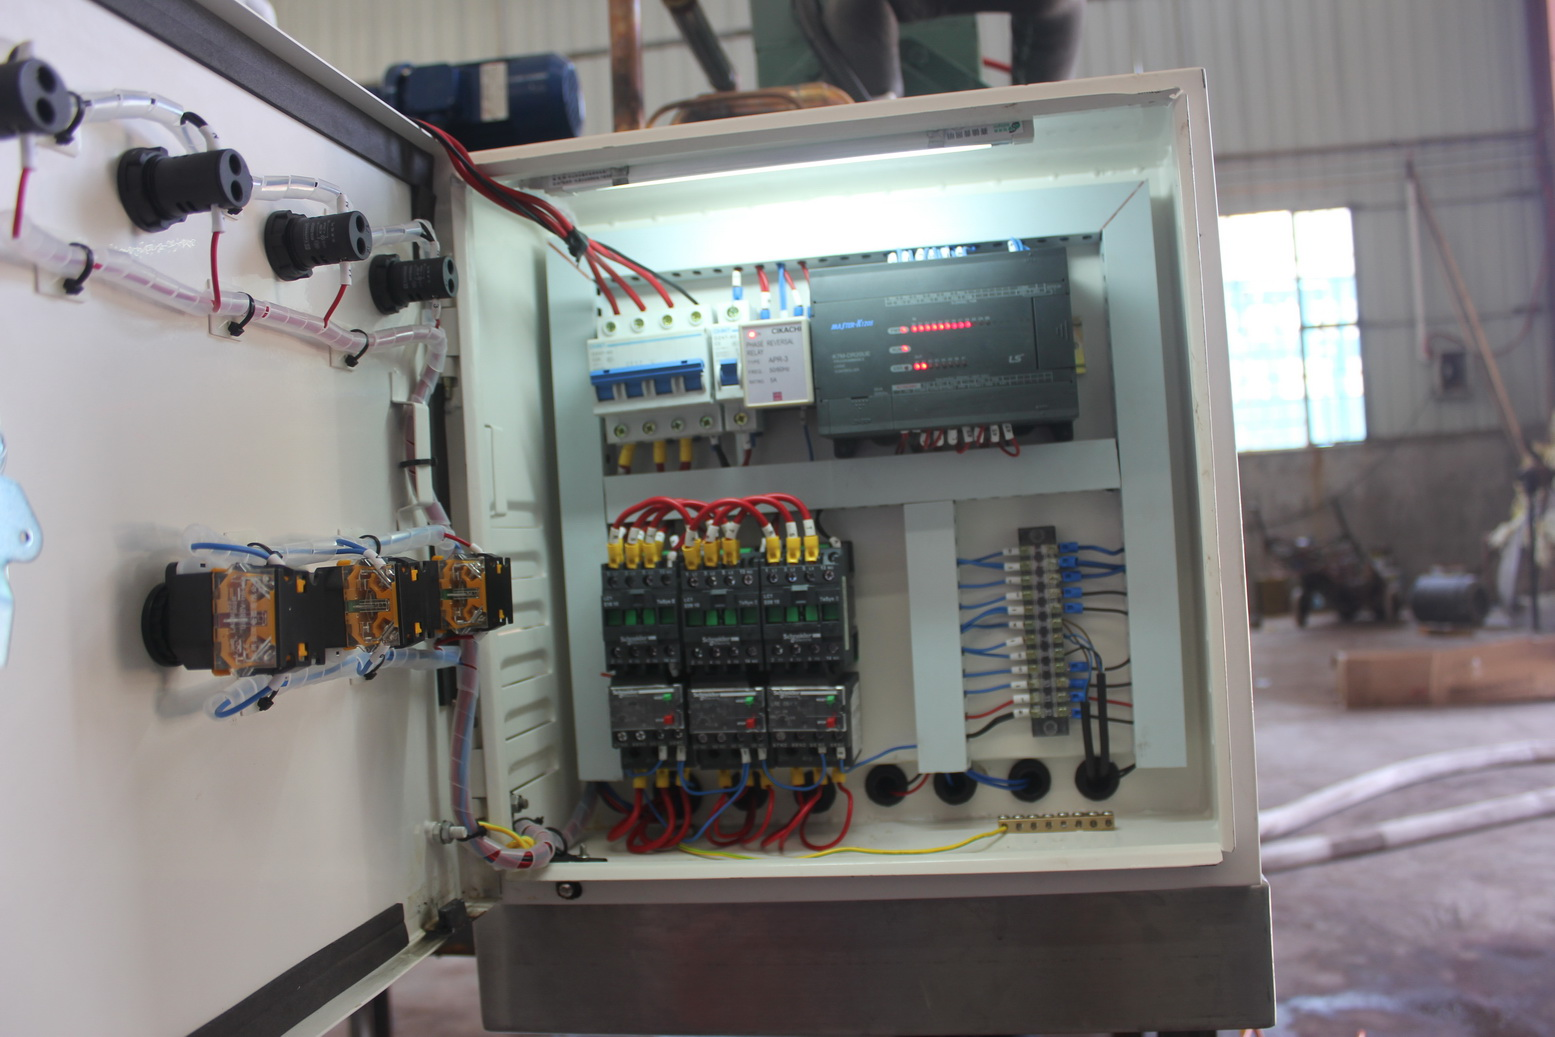 European quality standard flake ice machine control box using Schneider control